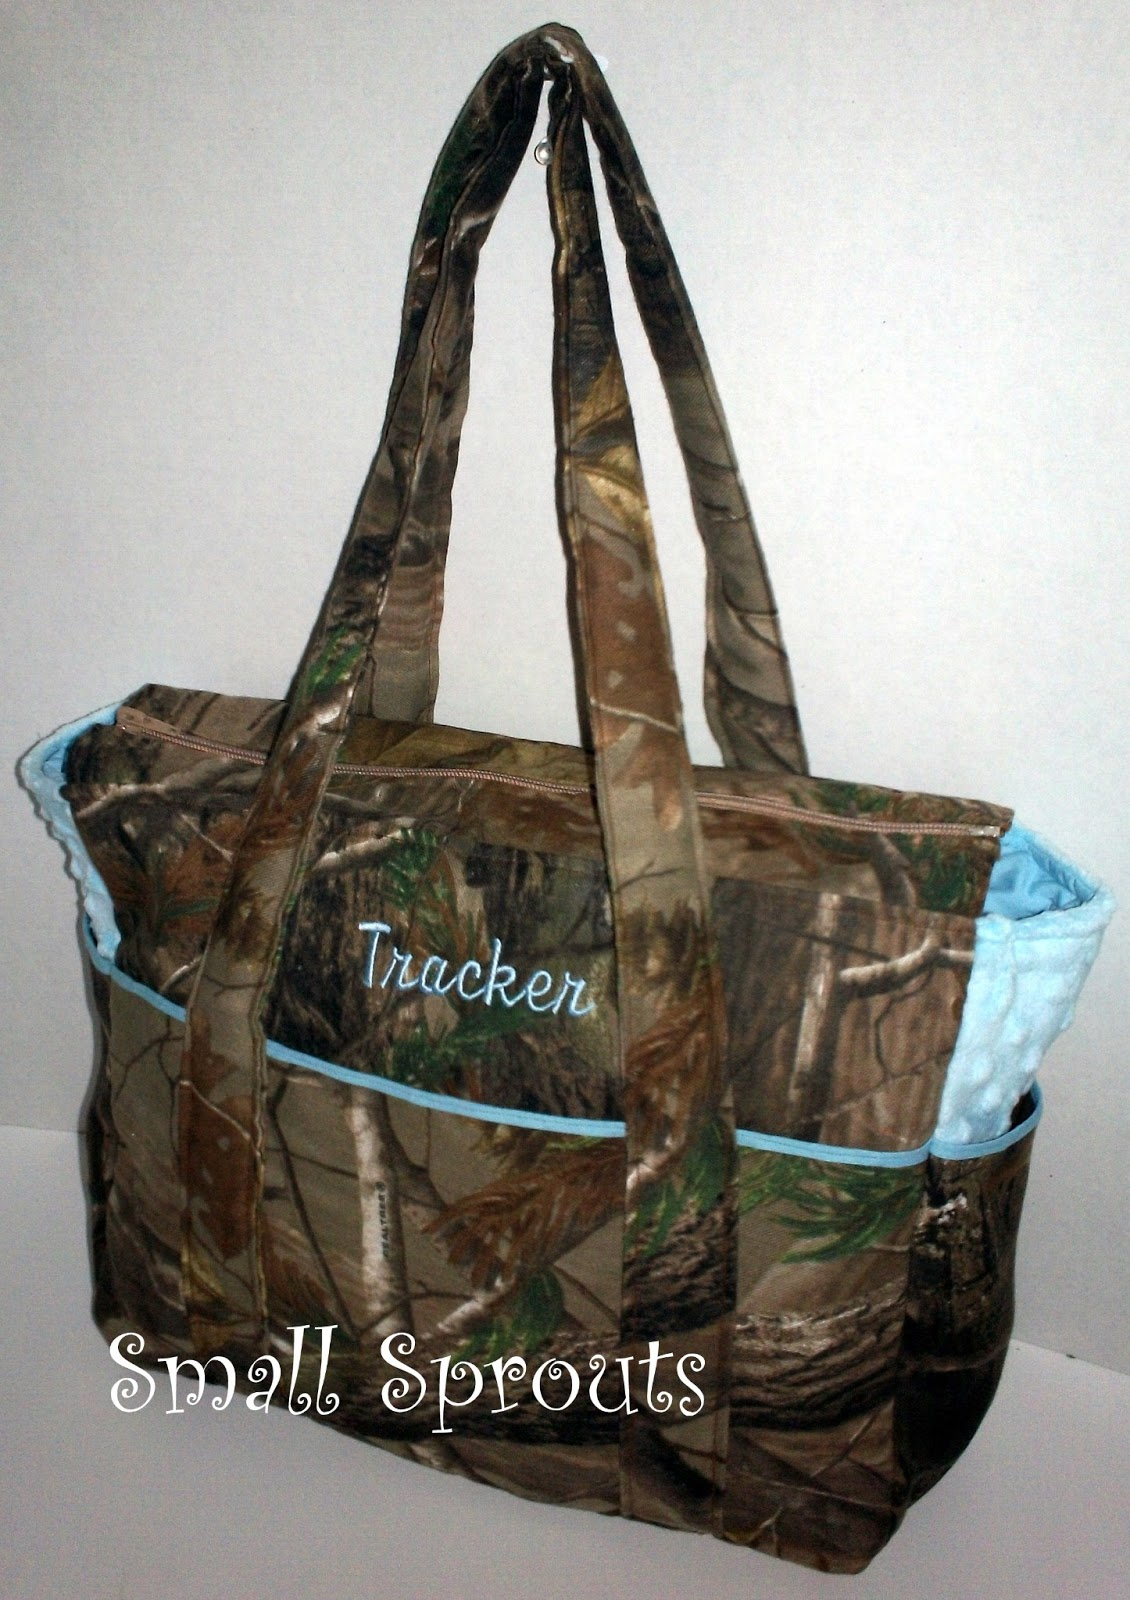 Small Sprouts: Real Tree AP Camo Light Blue Fancy Diaper Bag